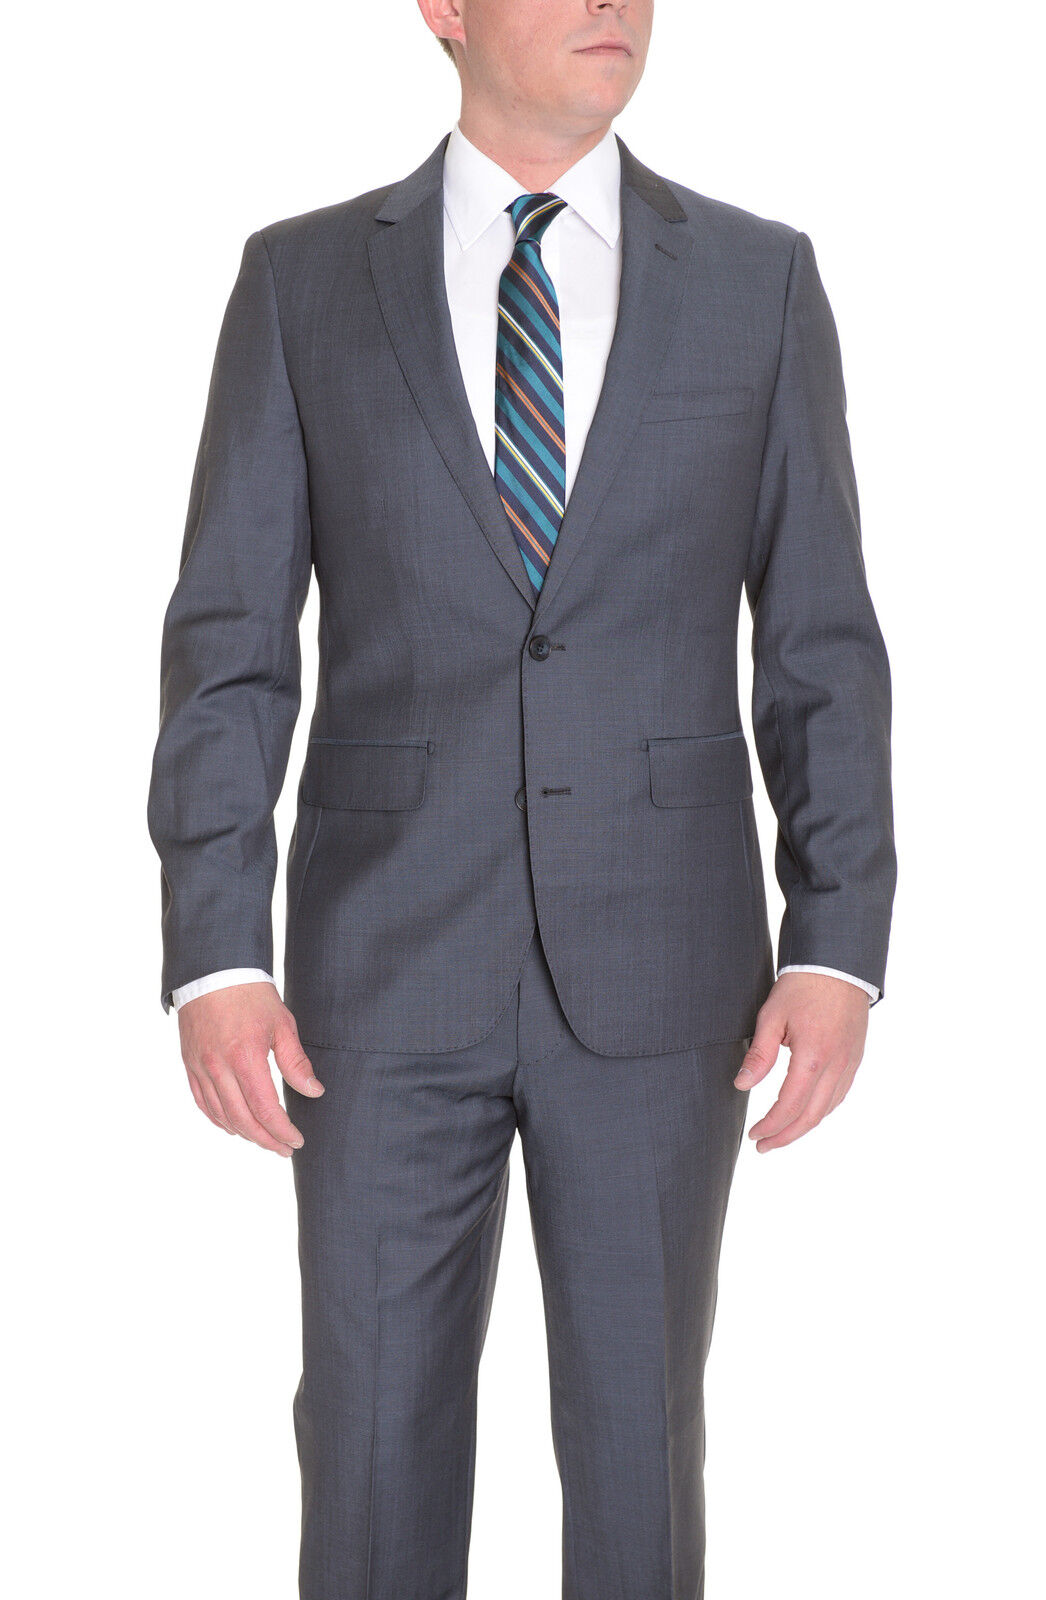 Extra Slim Fit Solid Charcoal Heather grau Two Button Wool Suit